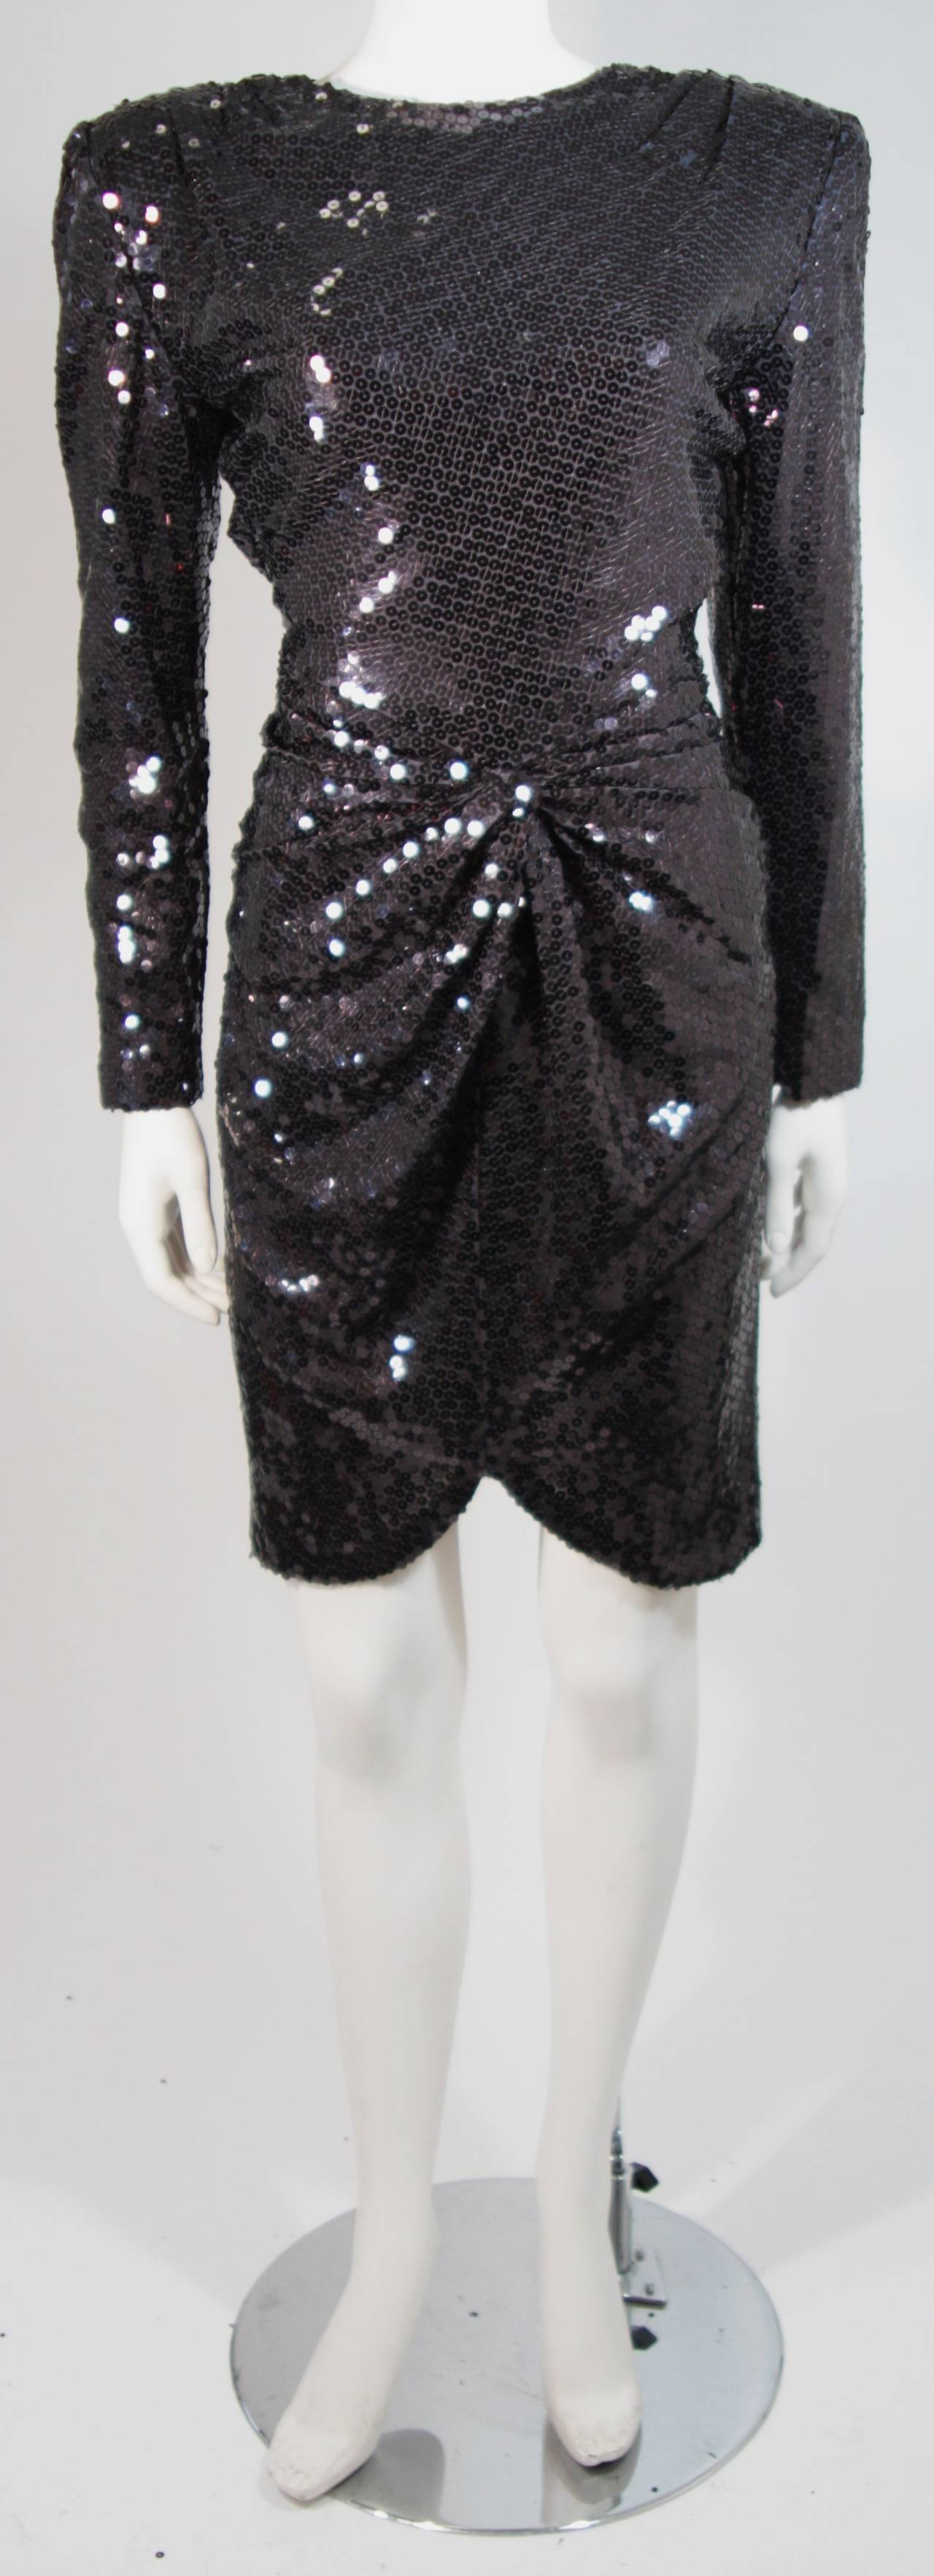 Vicky Tiel Black Iridescent Sequin Cocktail Dress Size 38 2